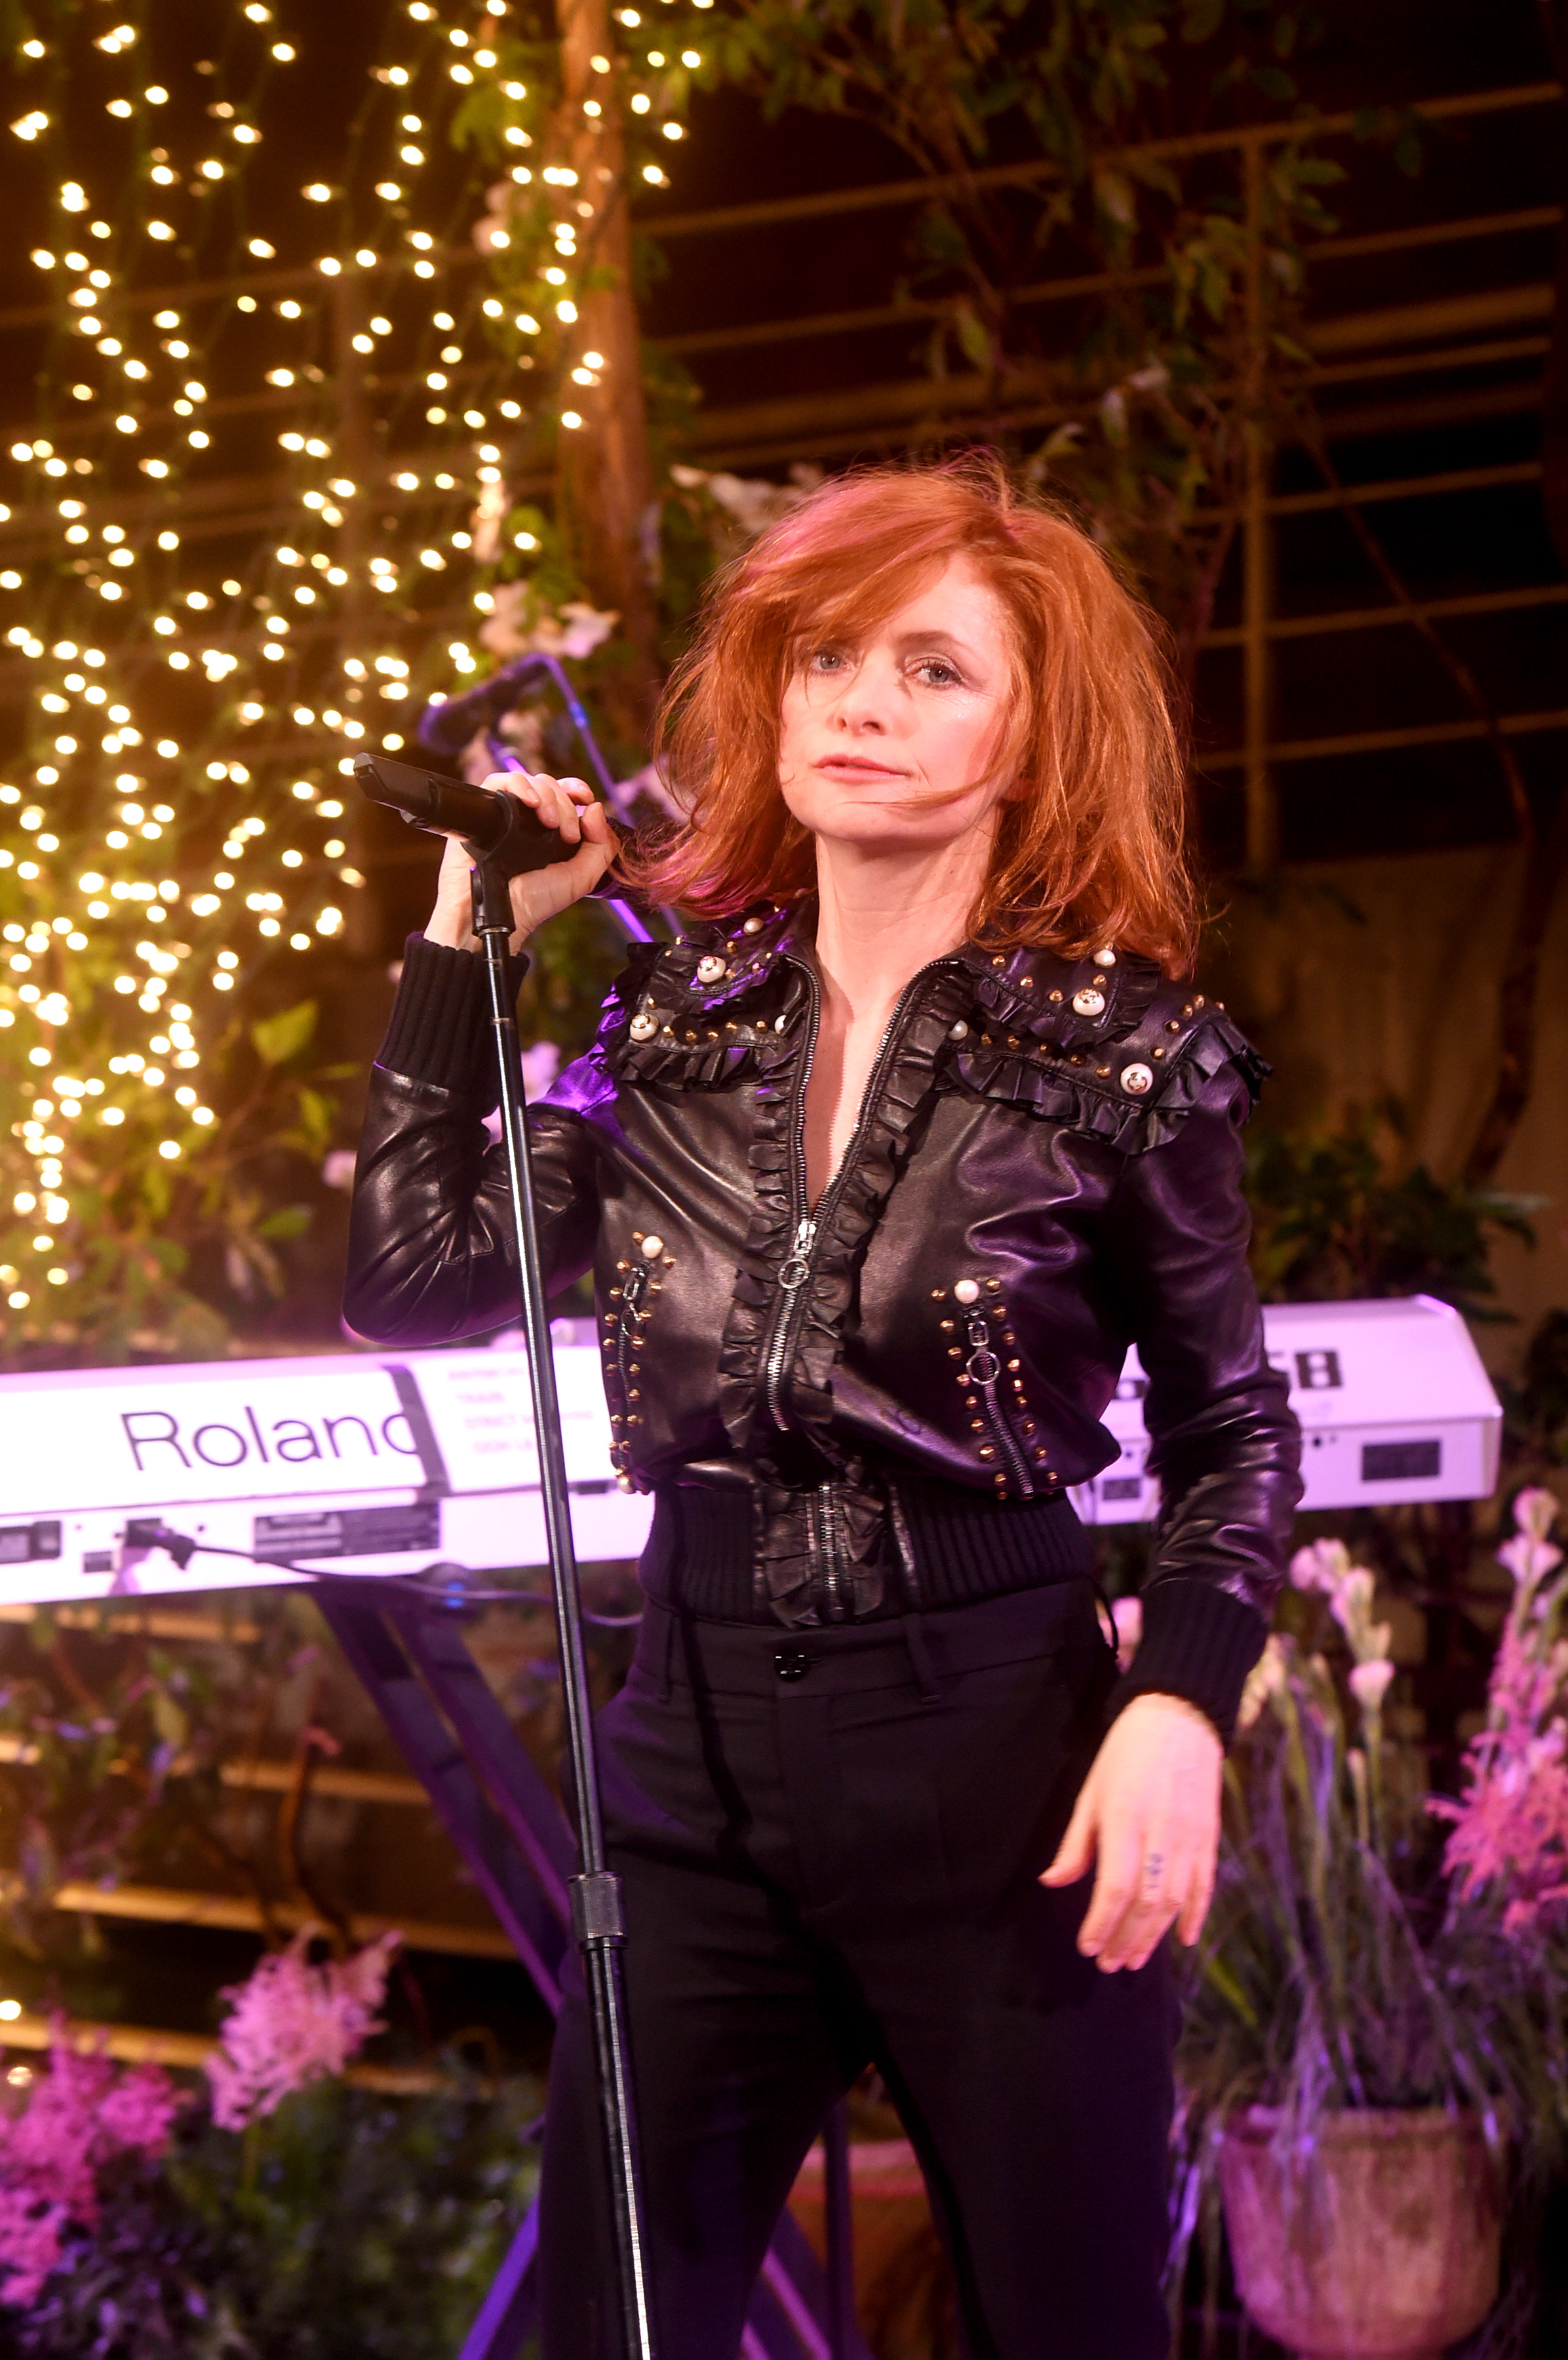 NEW YORK, NY - MAY 02: Goldfrapp performs onstage at the Gucci Bloom, Fragrance Launch at MoMA PS.1 on May 2, 2017 in New York City. (Photo by Jamie McCarthy/Getty Images for Gucci)